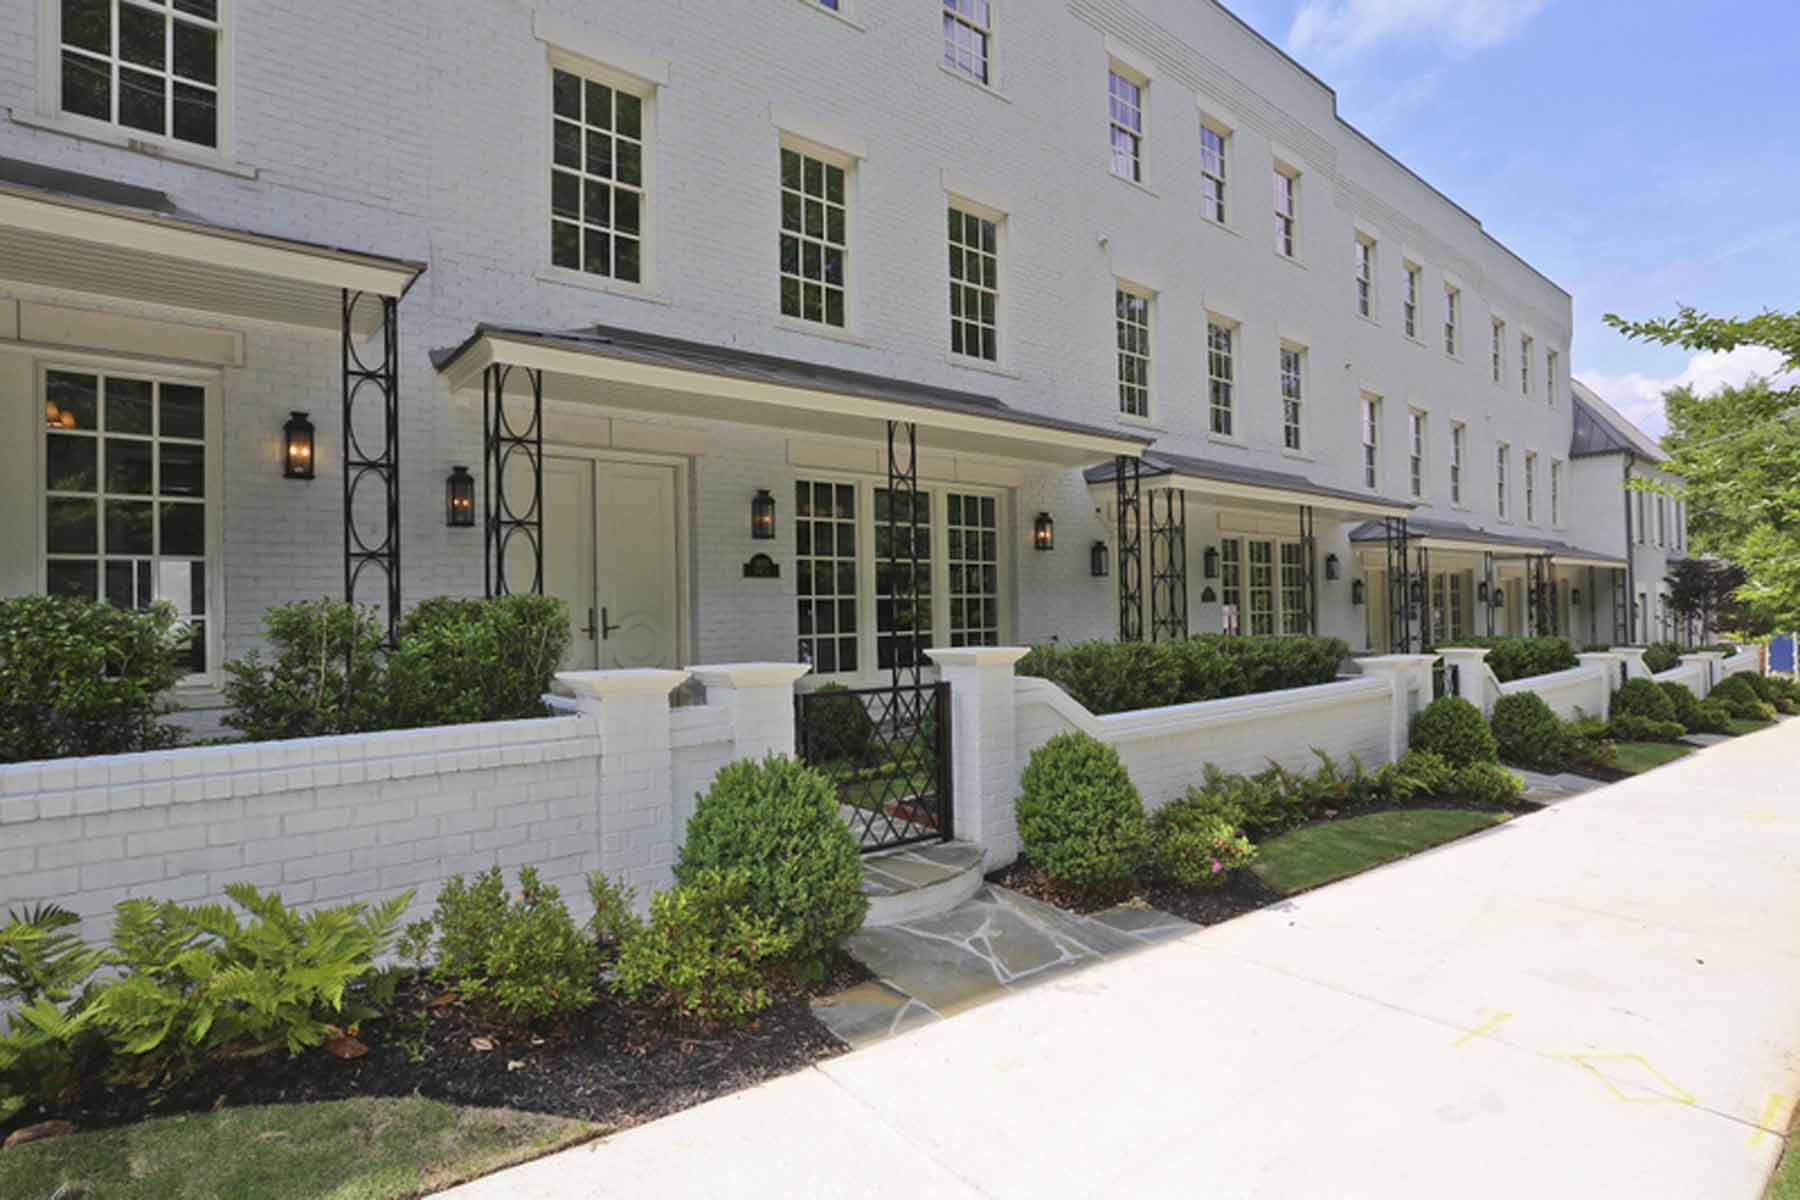 Townhouse for Sale at BRAND NEW TOWNHOME BY MONTE HEWETT HOMES. 1400 Piedmont Avenue NE No. 5 Atlanta, Georgia, 30309 United States